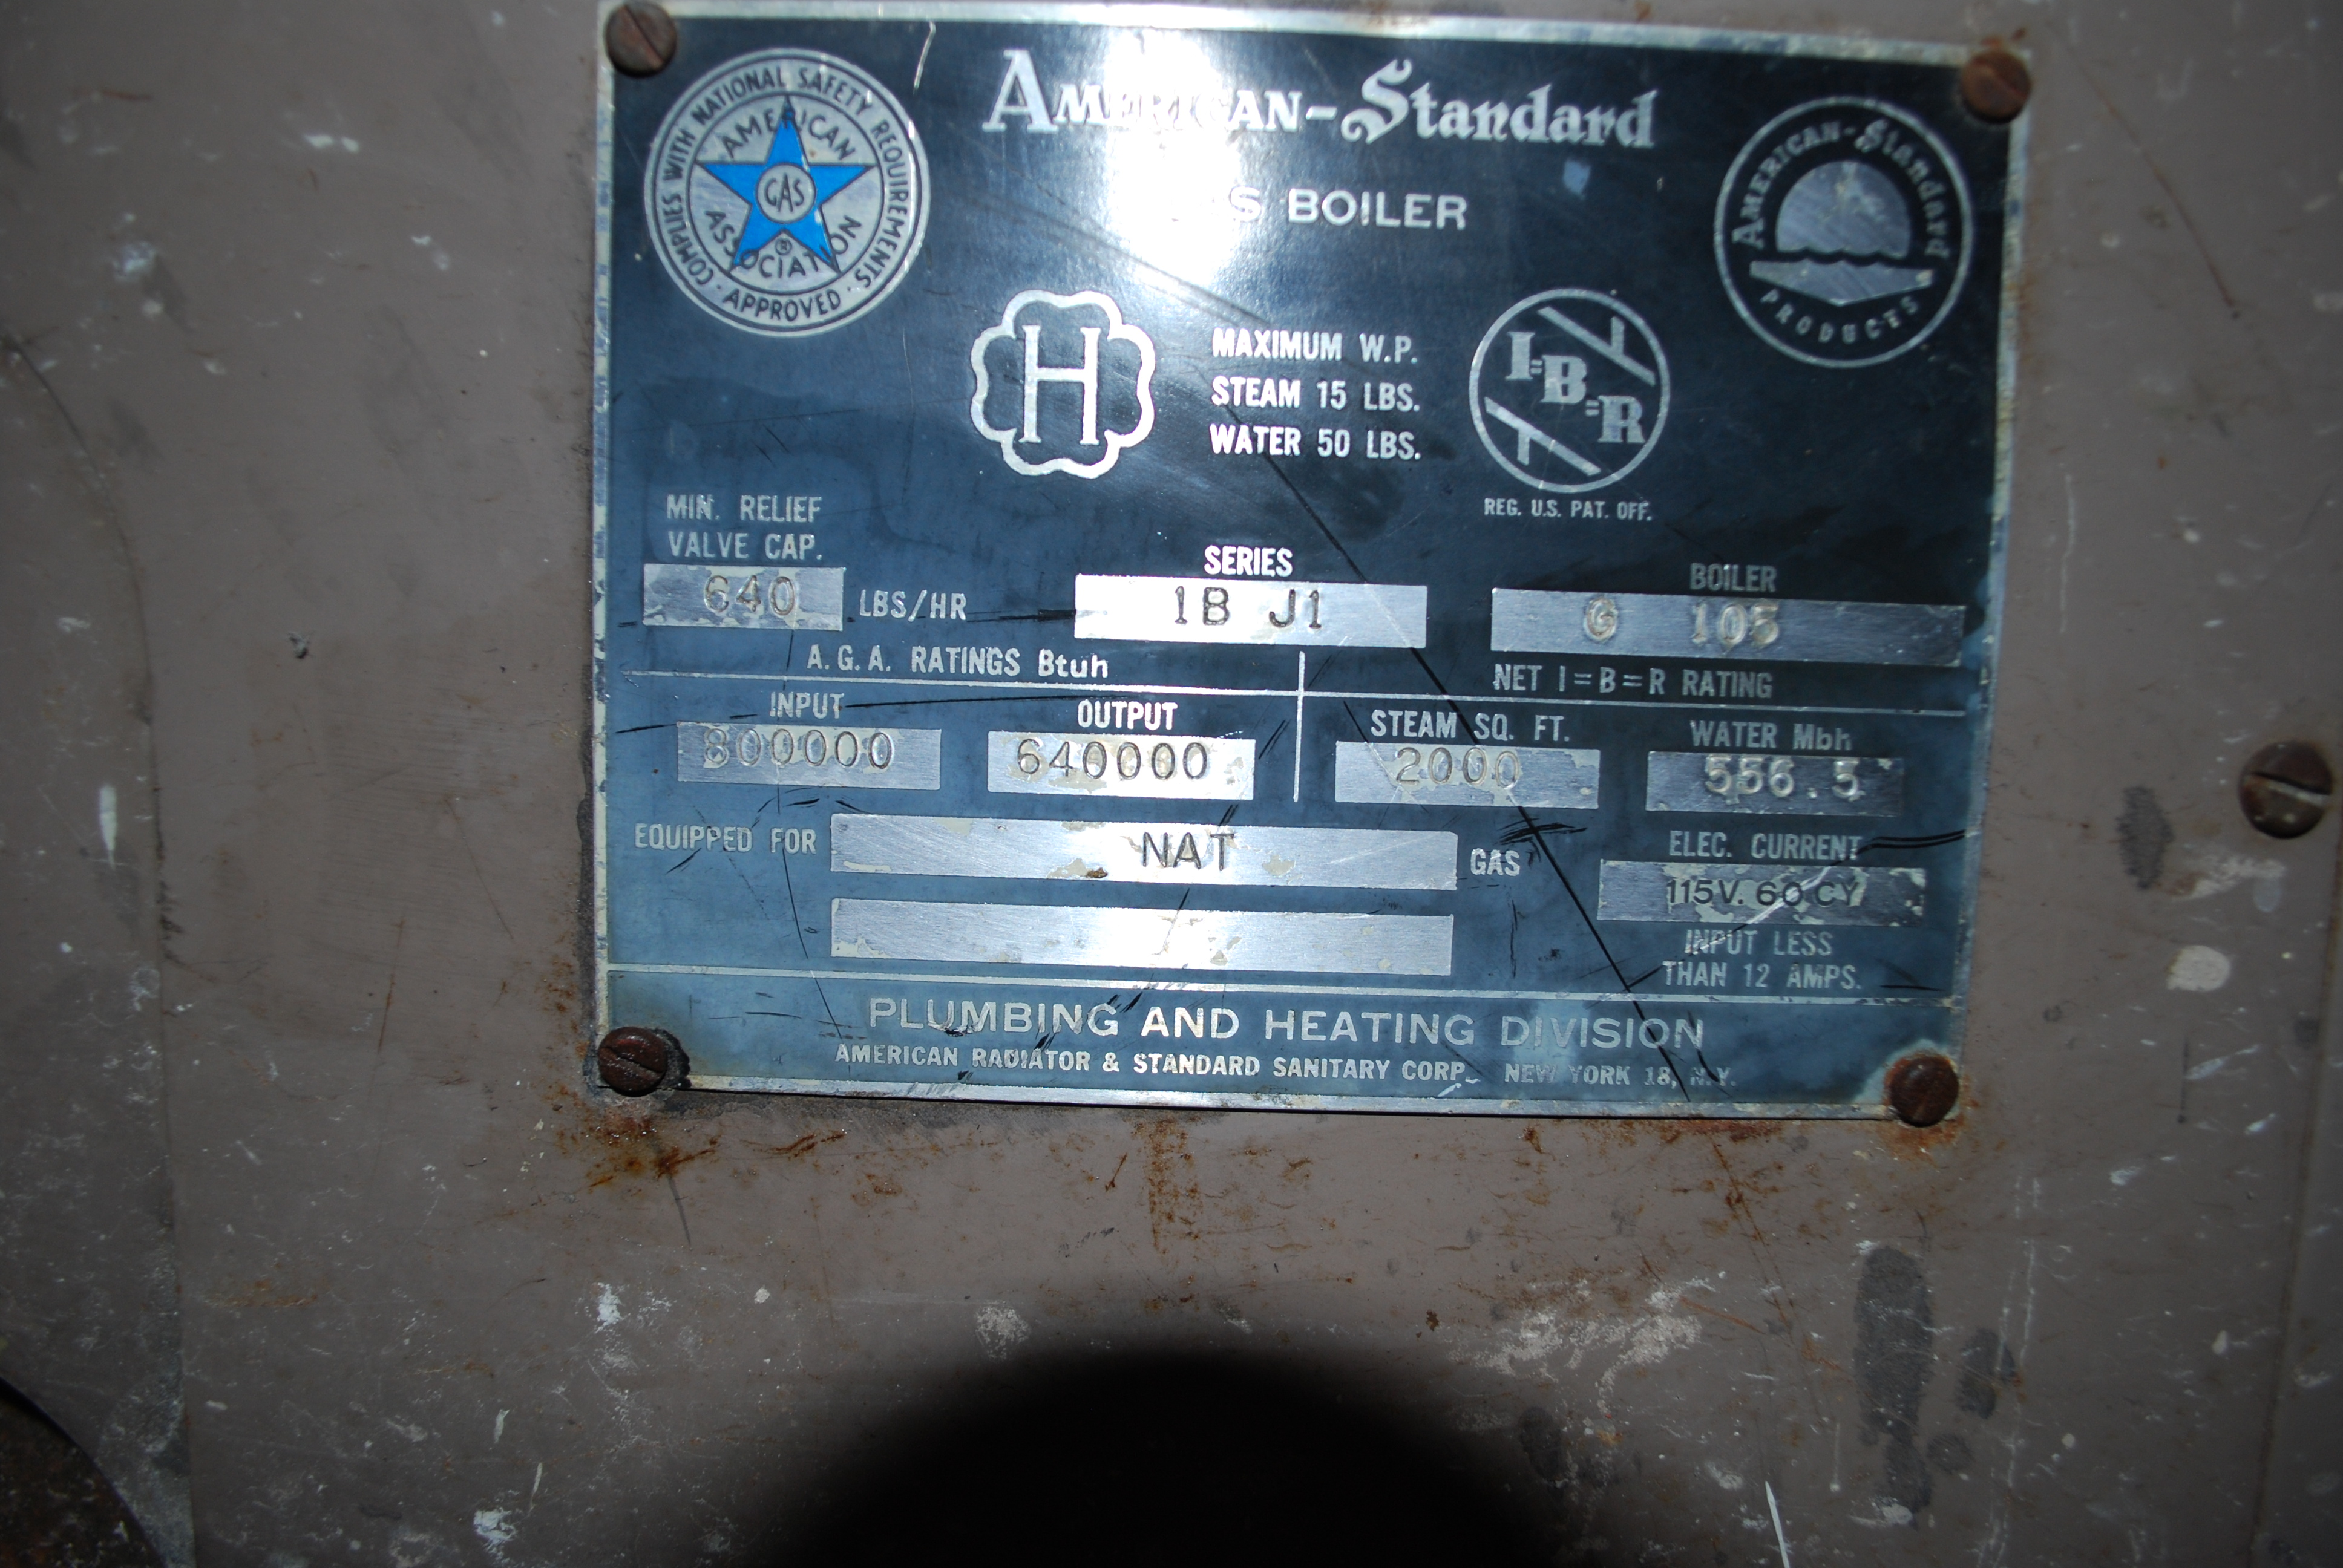 NEED User/Owners Manual For Old American Standard Boiler